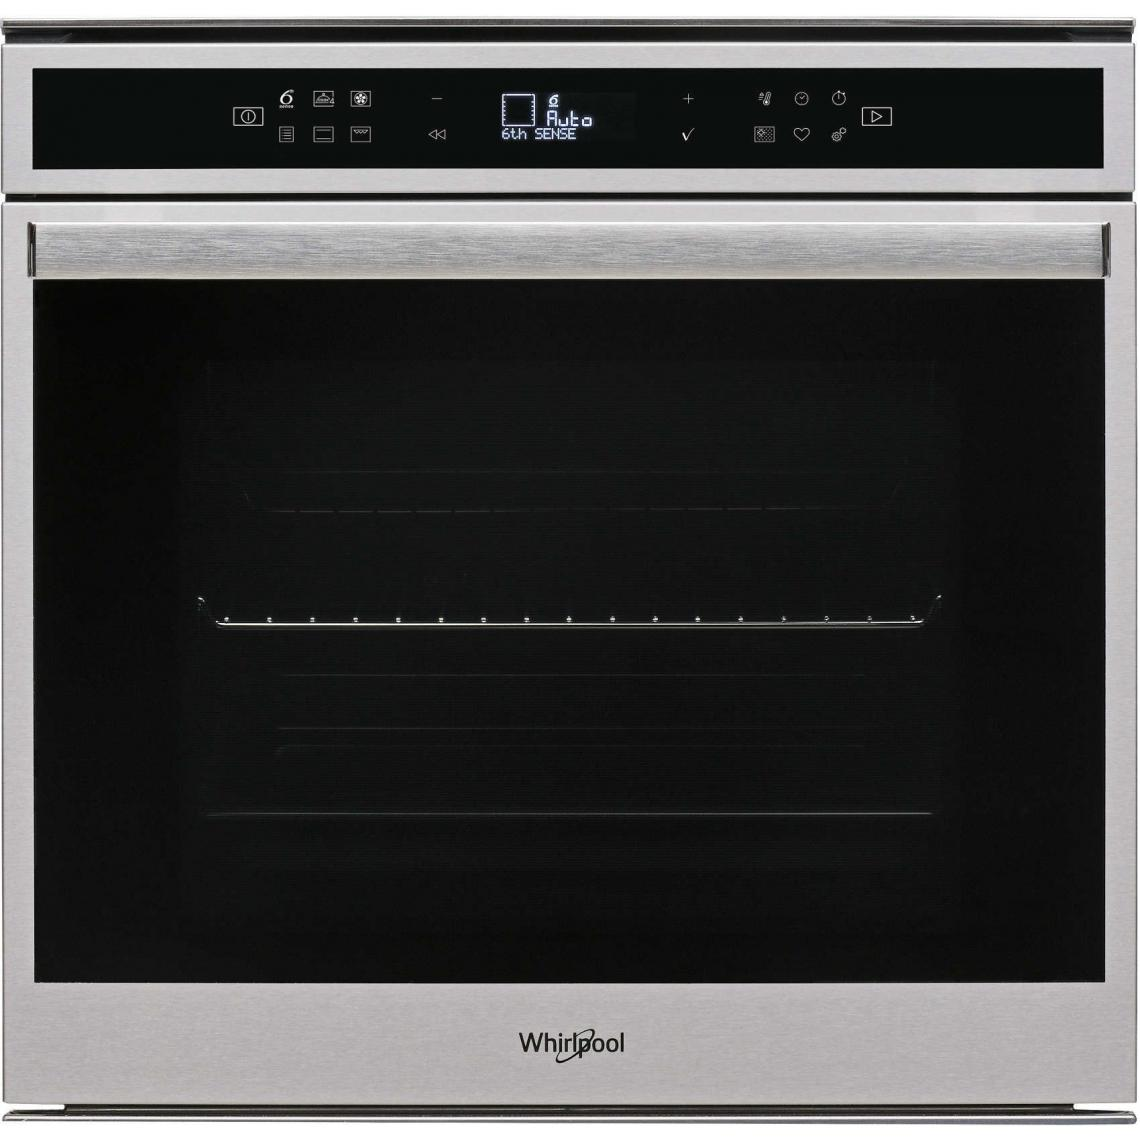 whirlpool Four encastrable Multifonction 73L WHIRLPOOL 3650W 60cm A+, 1119606